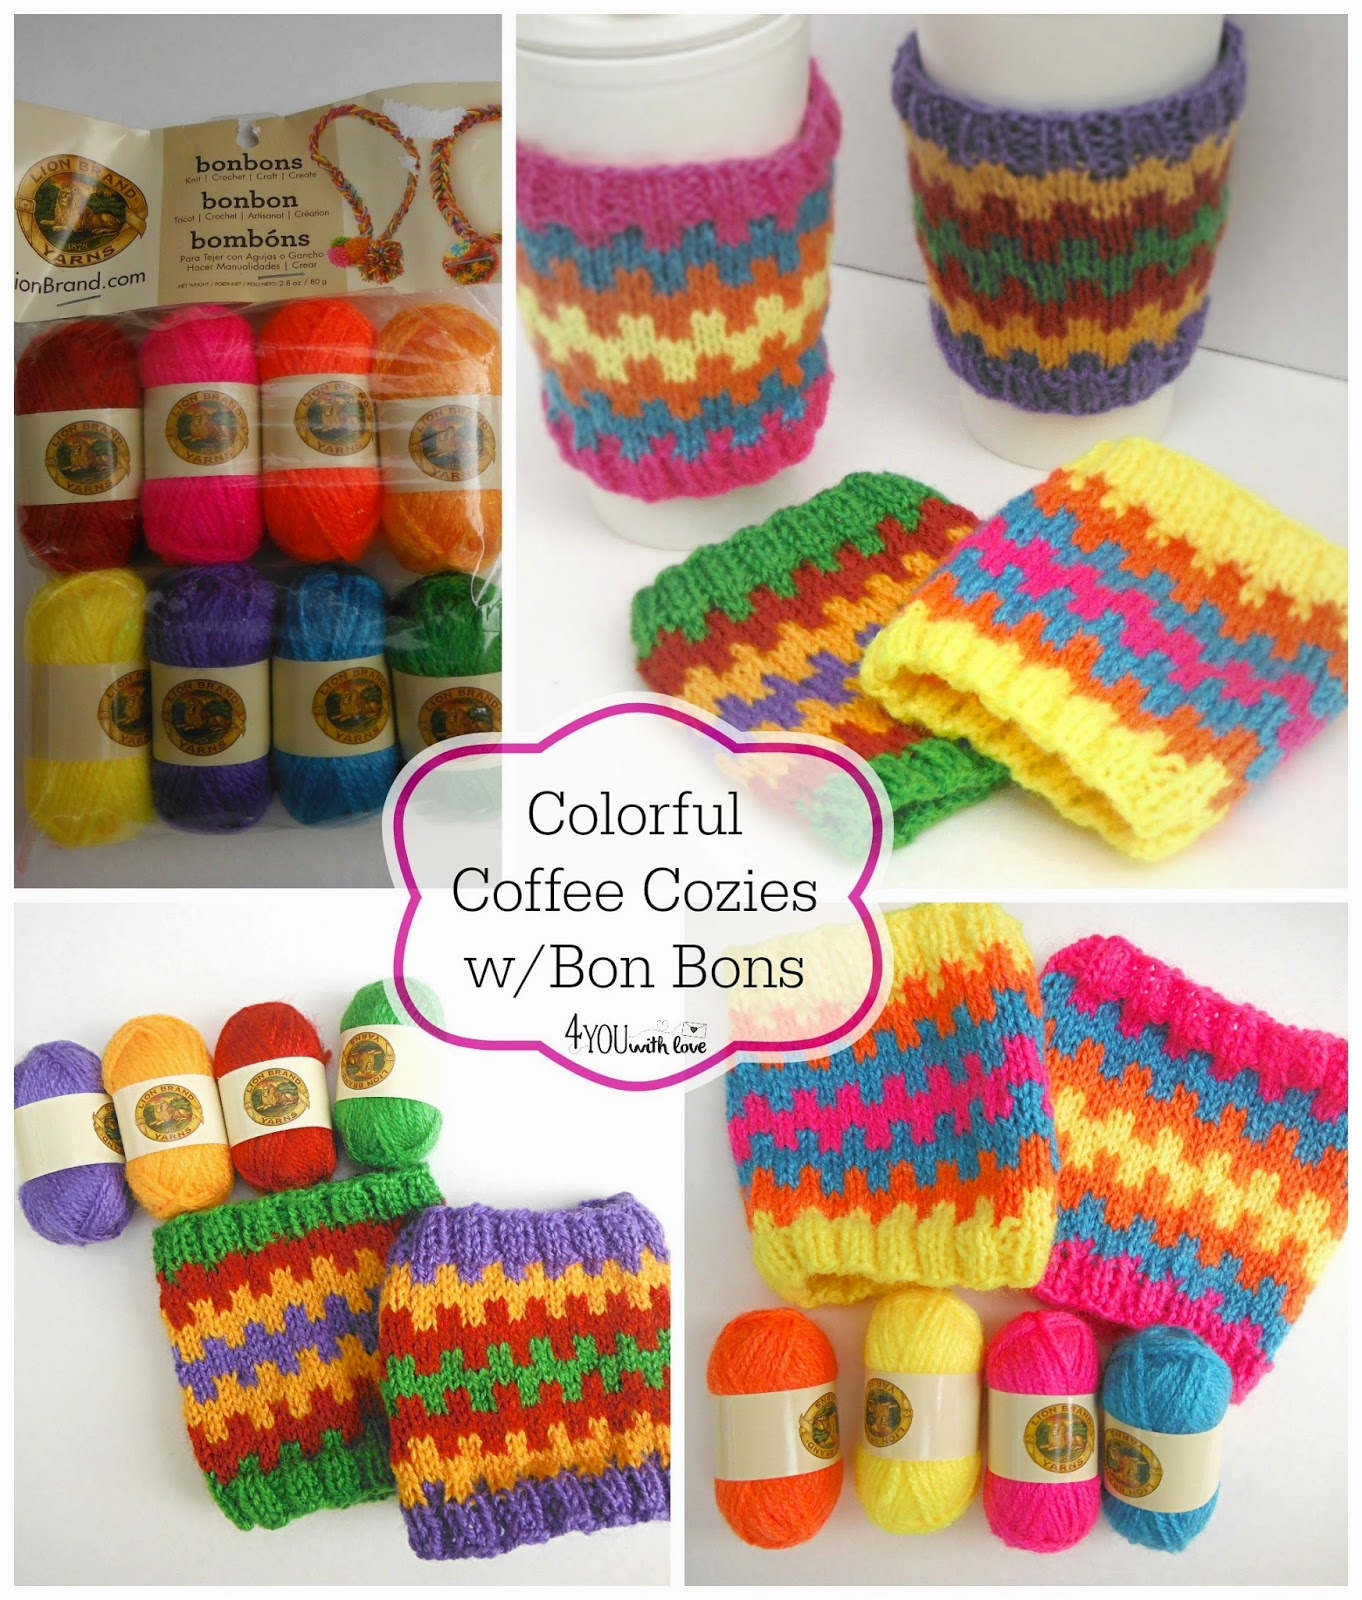 Colorful Coffee Cozies with Bonbons